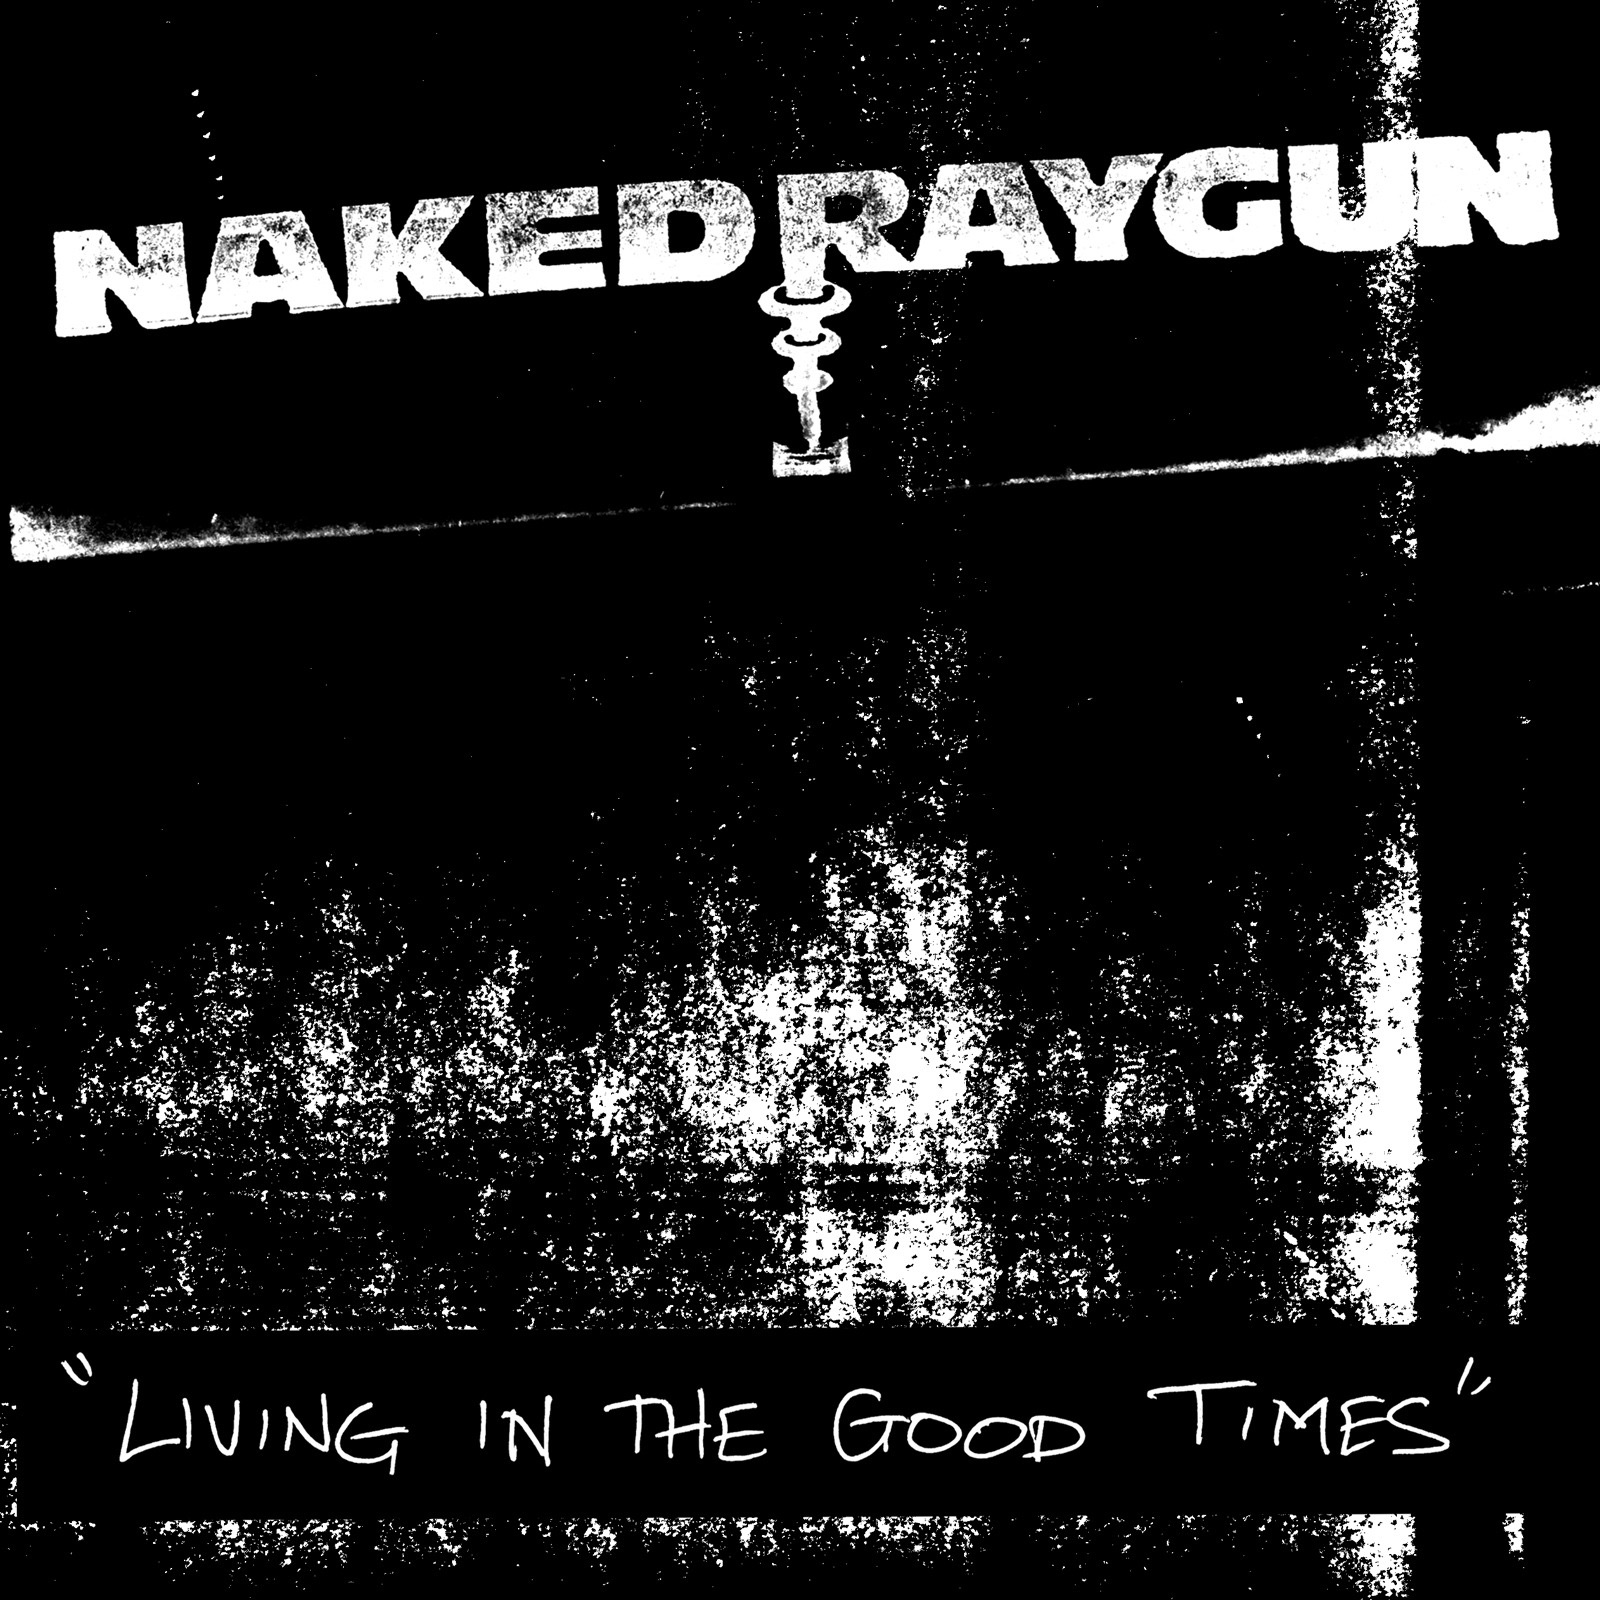 Art for Living in the Good Times by Naked Raygun